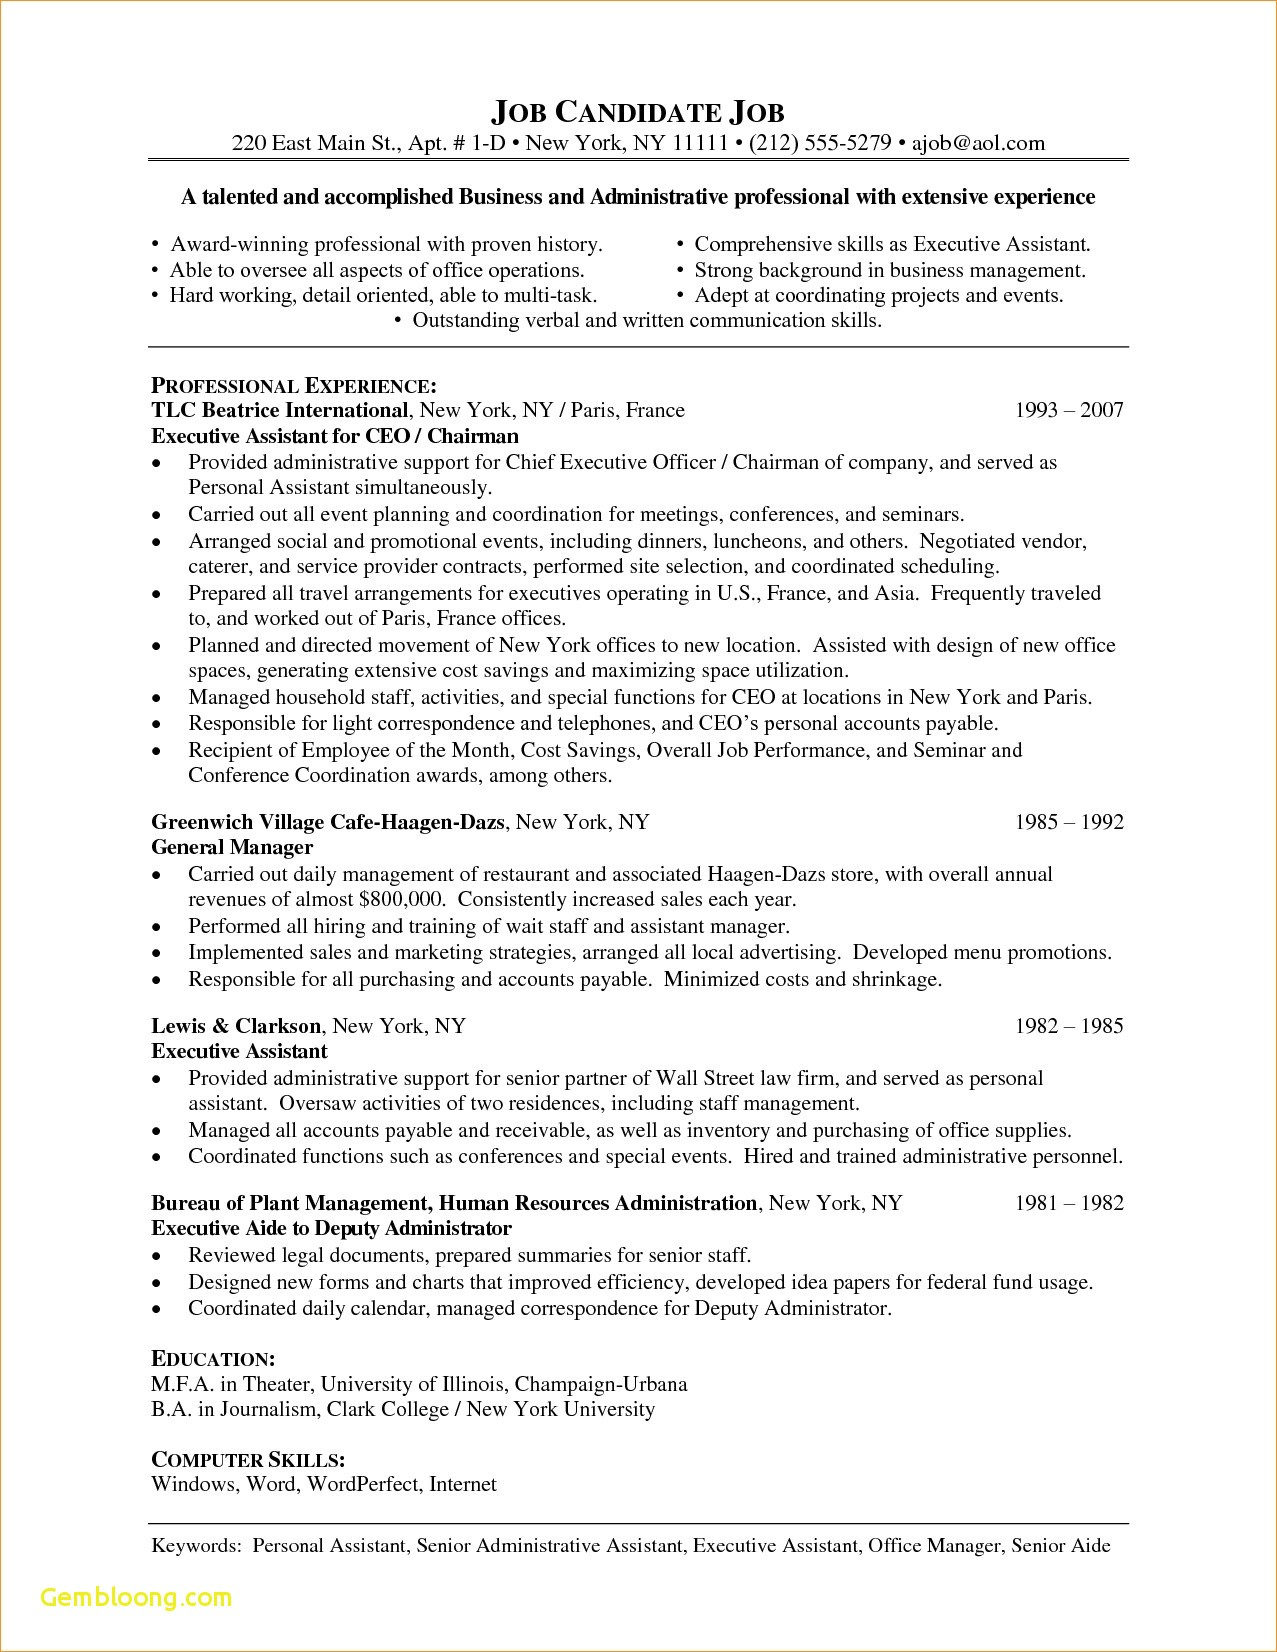 Executive Cover Letter Template - Sample Cover Letter for Senior Management Position